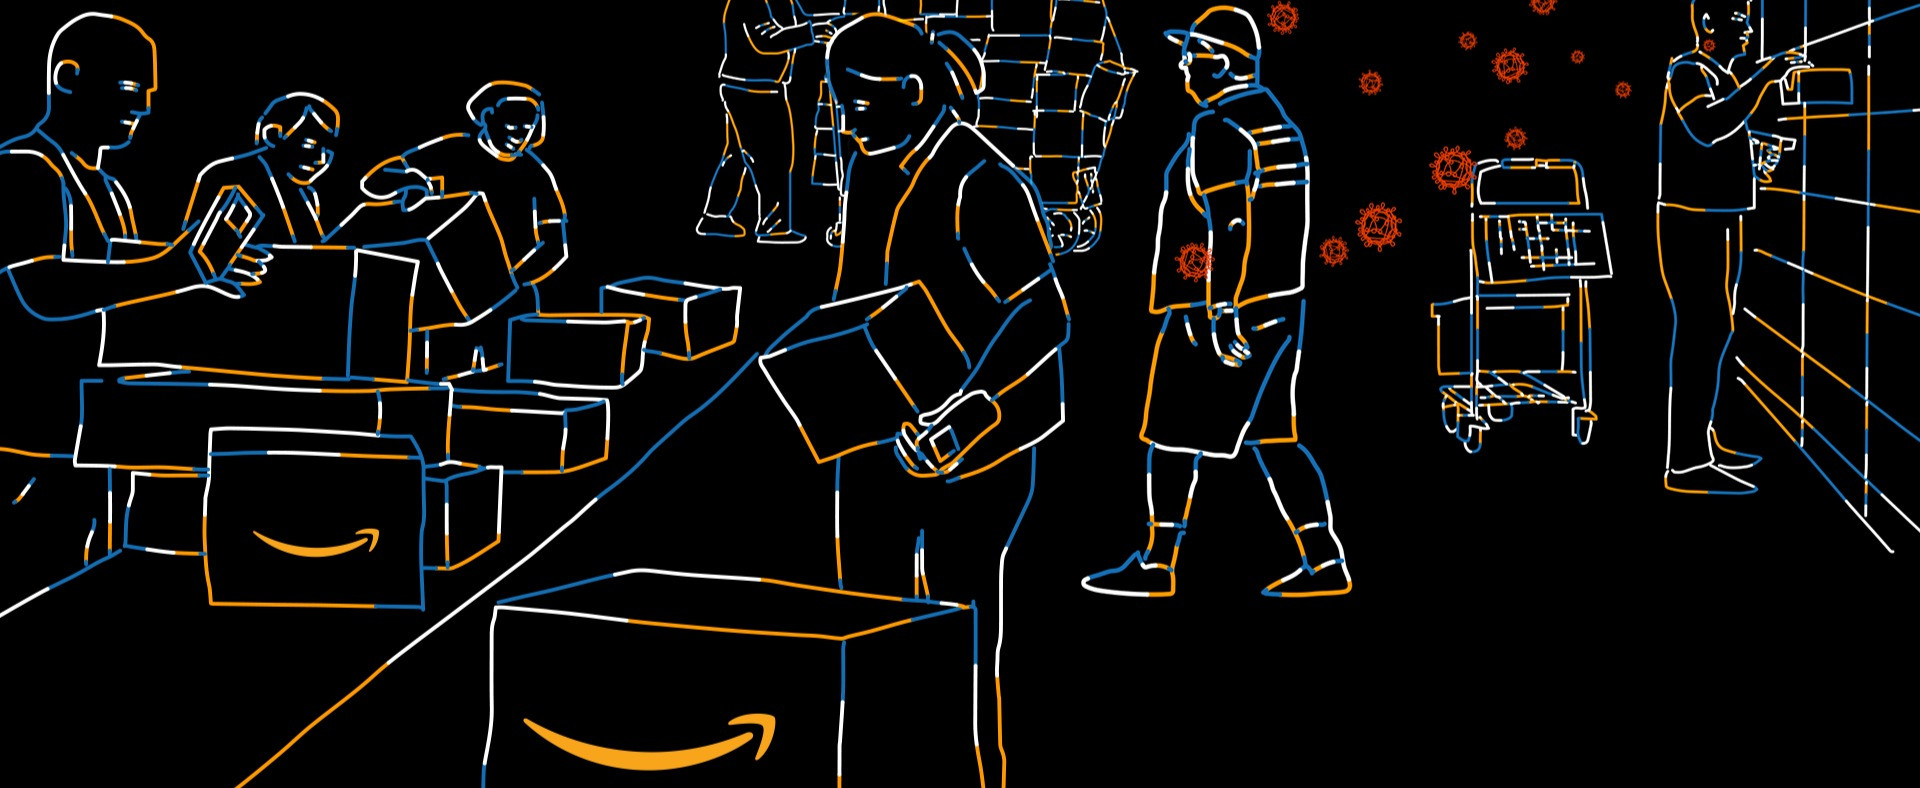 Inside an Amazon Warehouse during Covid-19